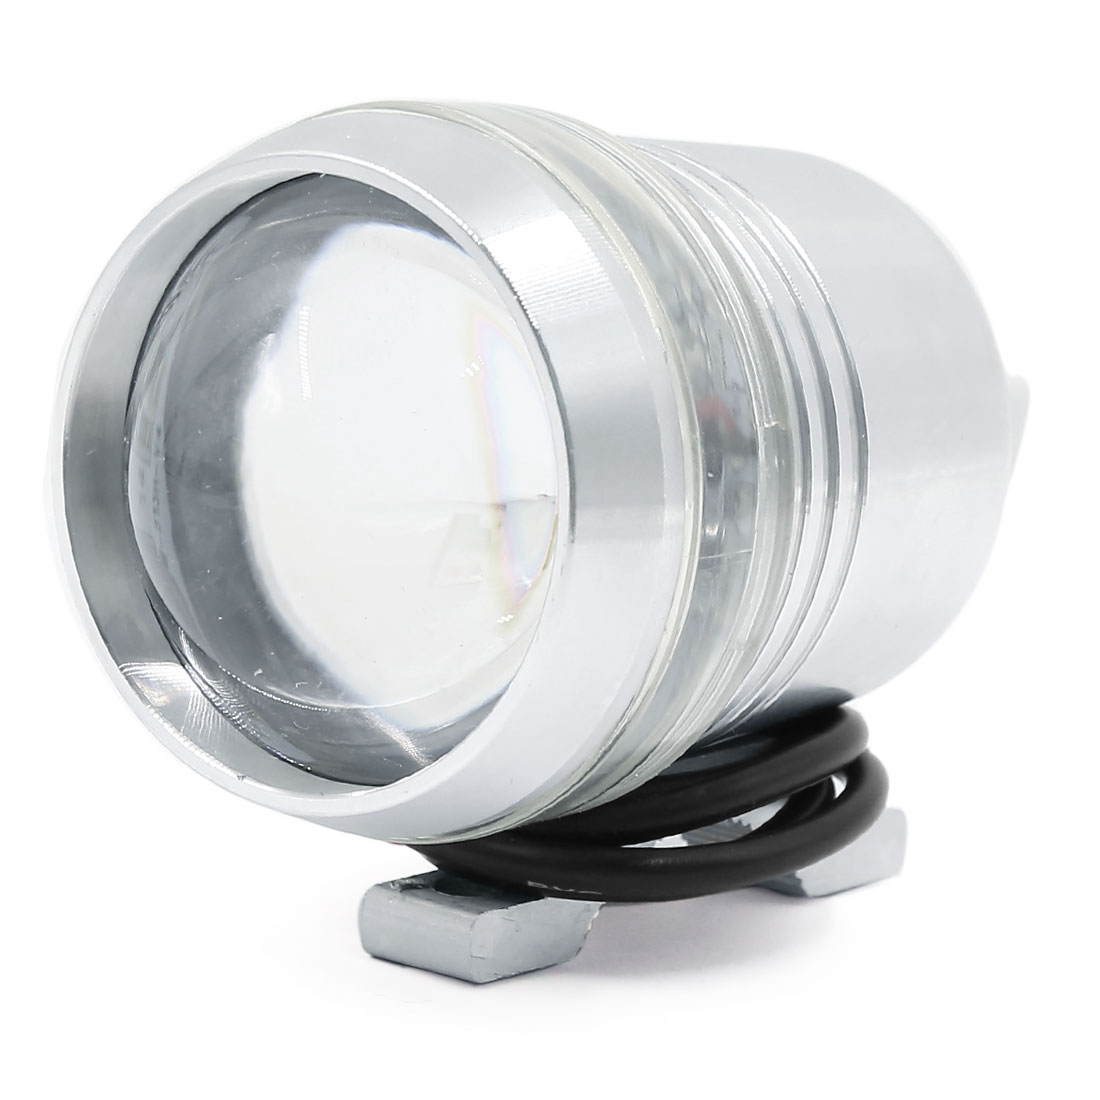 Waterproof U2 LED Motorcycle Car Headlight Fog Spot Light Working Lamp 30W 12V